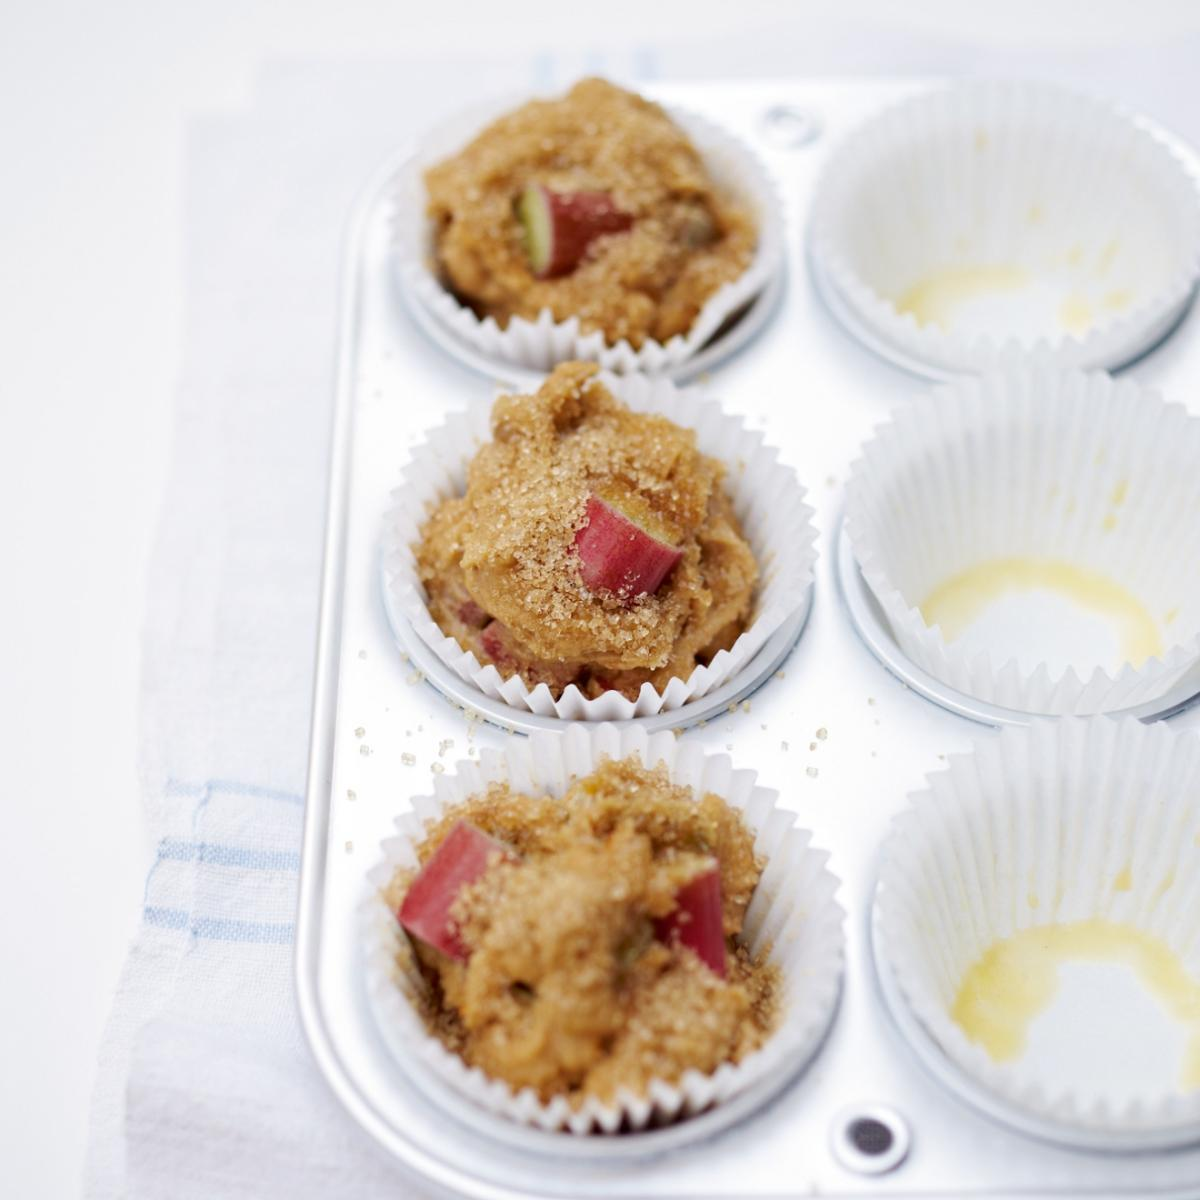 Cakes rhubarb and orange muffins